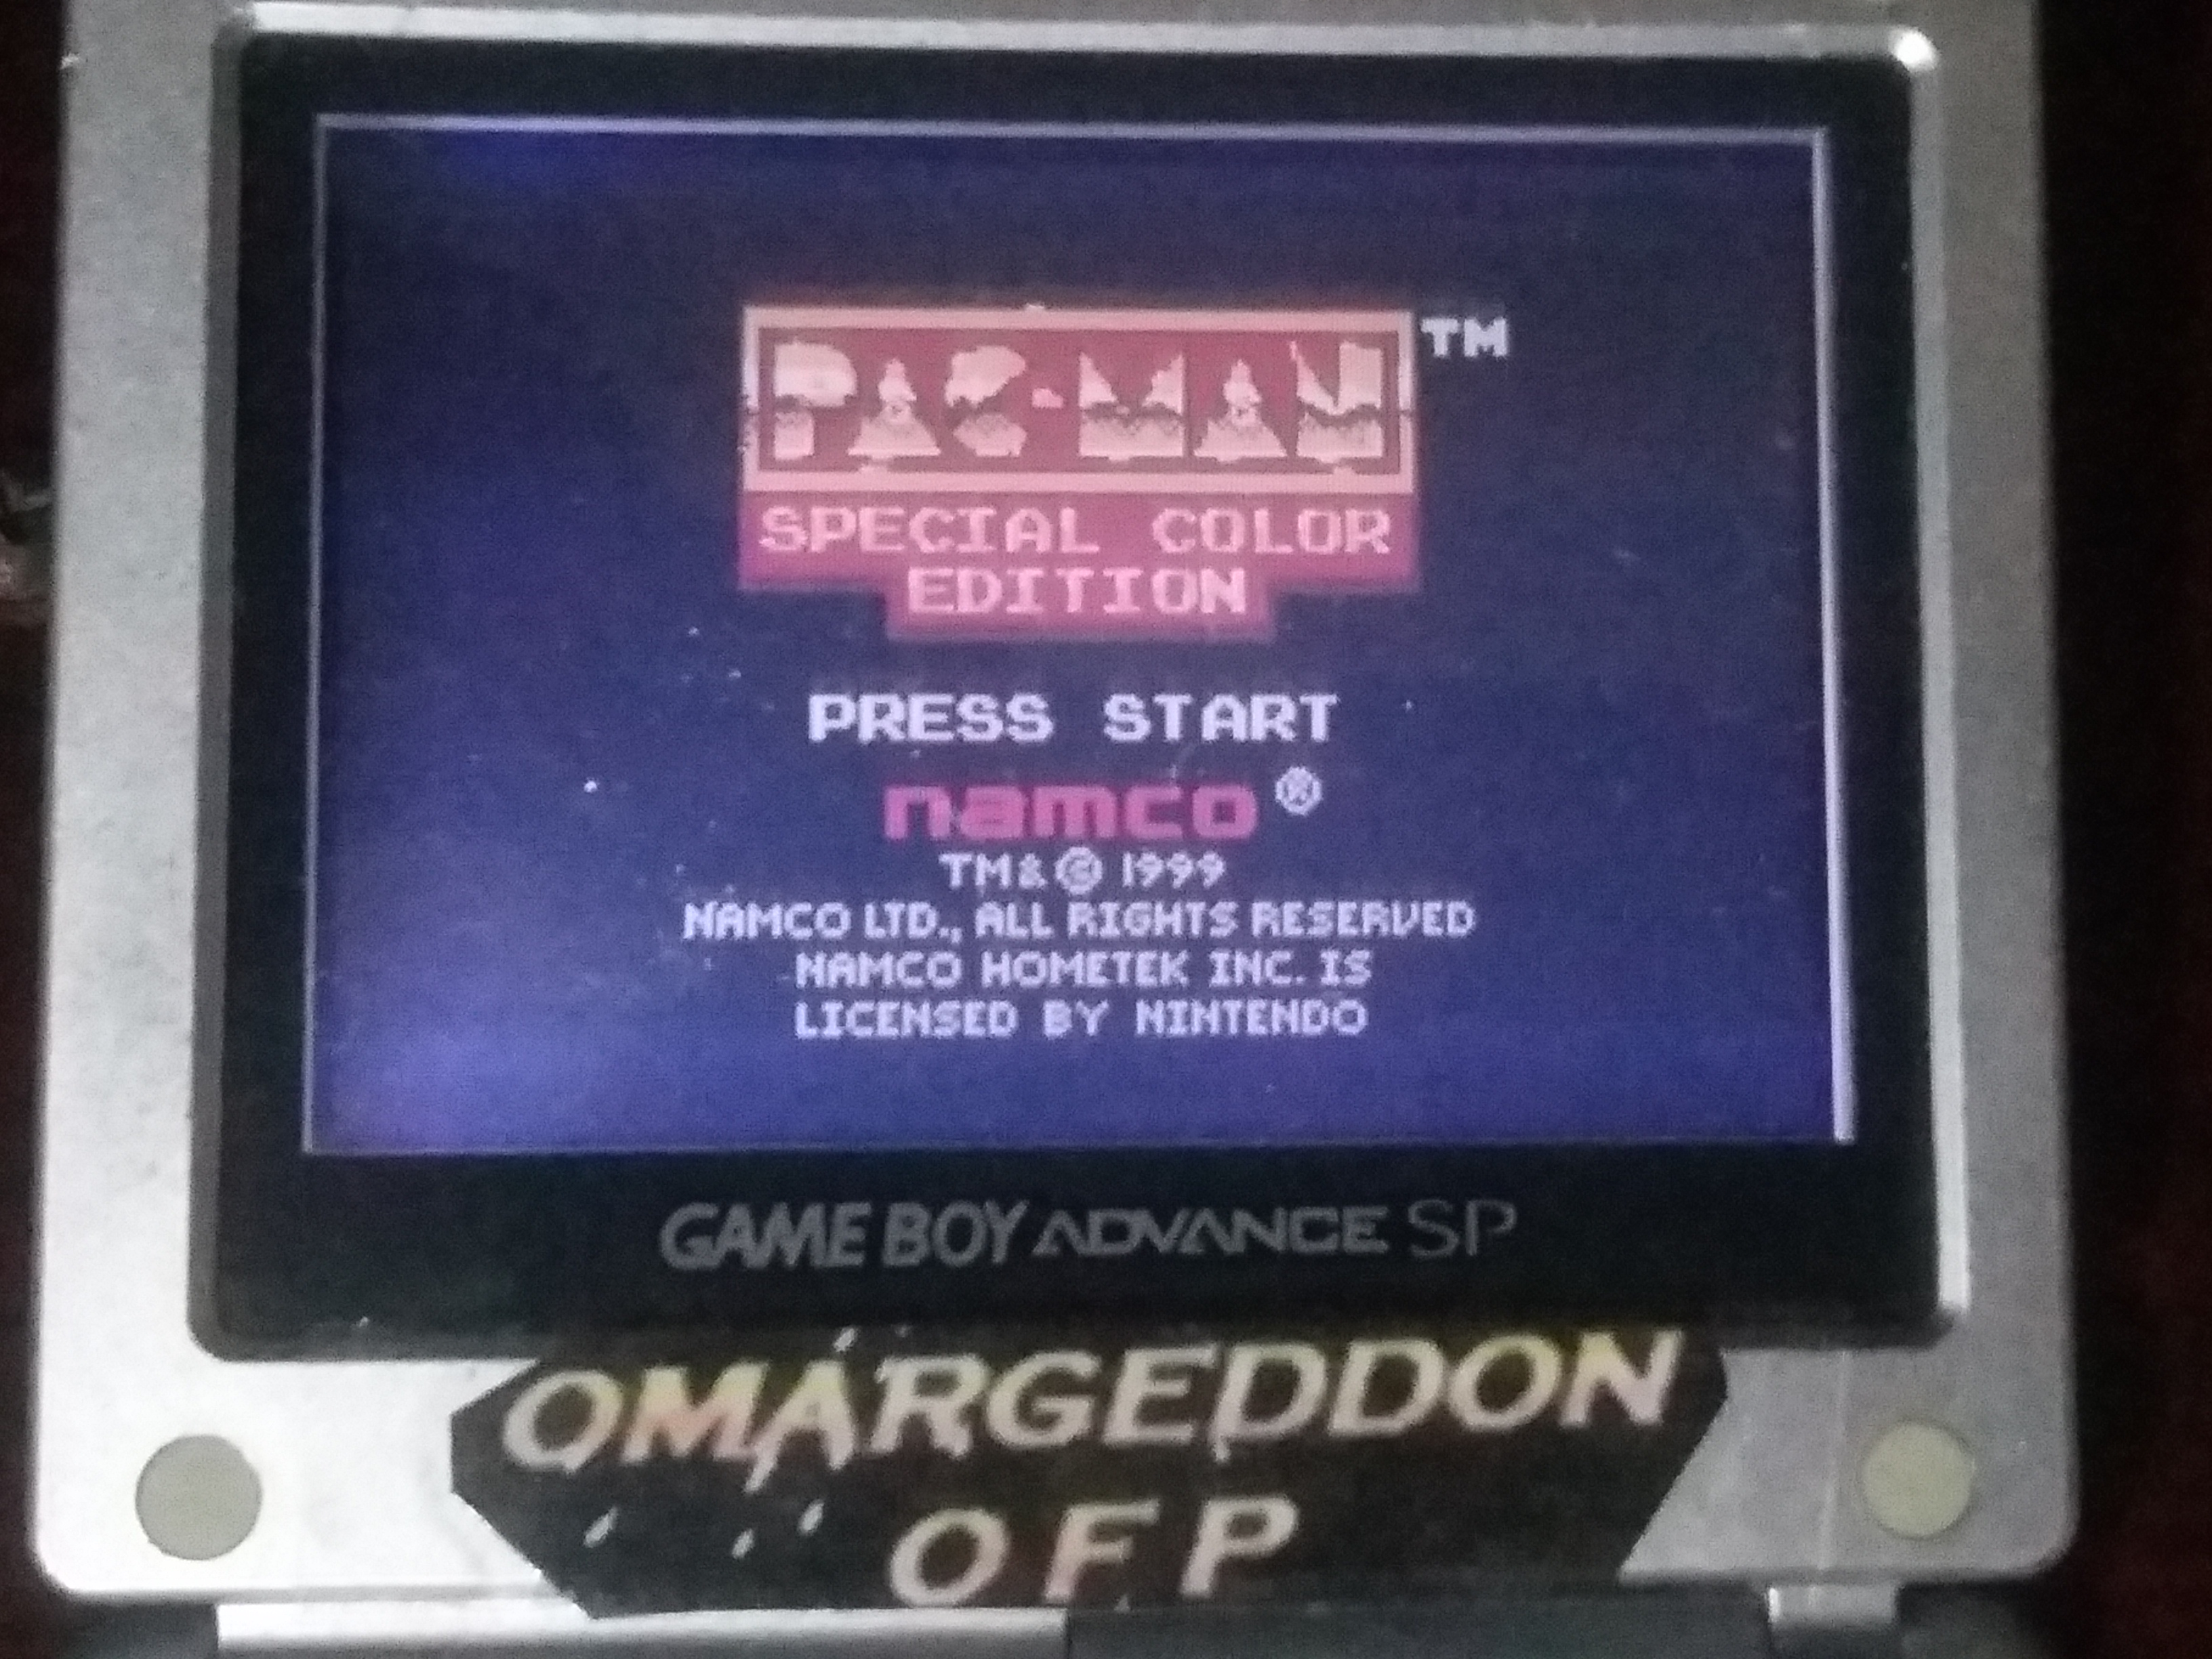 omargeddon: Pac-Man: Special Color Edition (Game Boy Color) 33,210 points on 2018-01-28 23:43:32